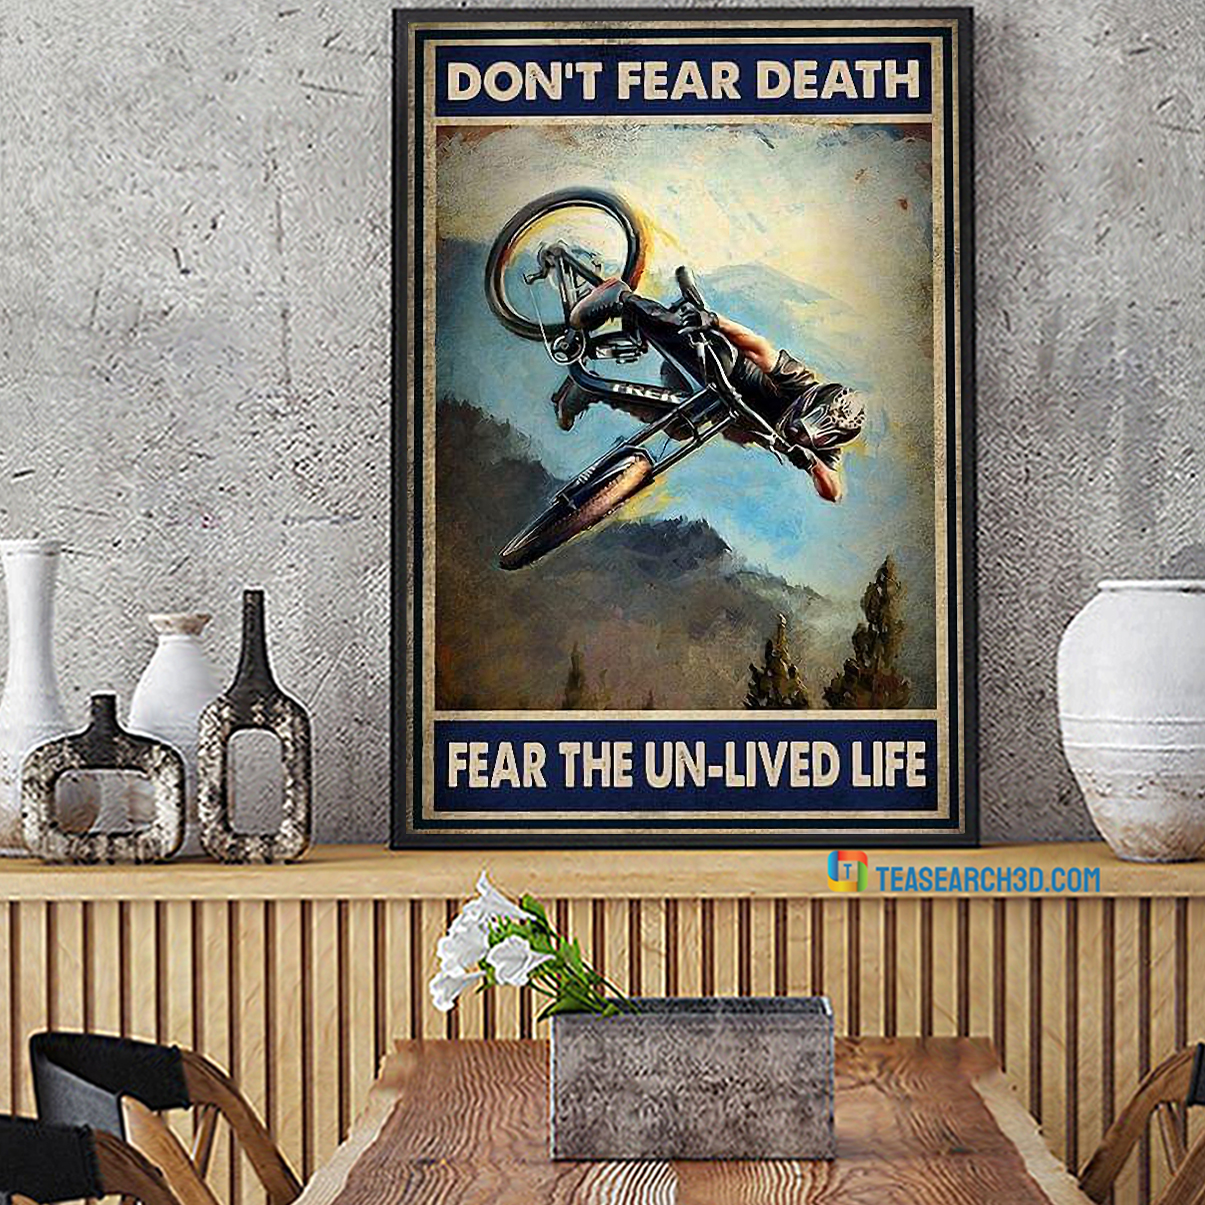 Mountain bike don't fear death fear the un-lived life poster A1